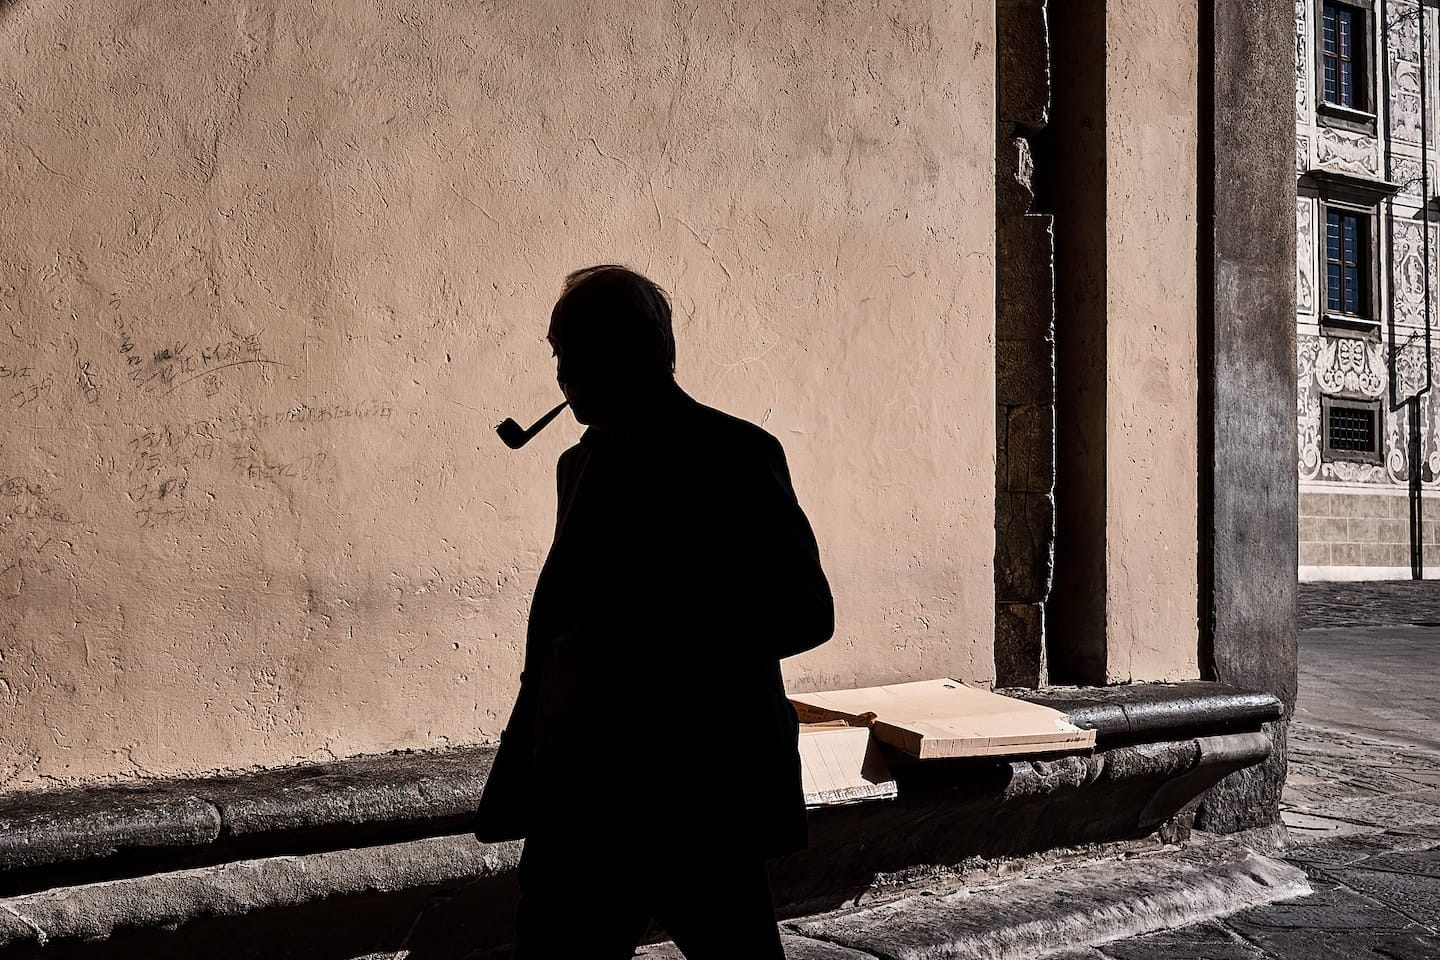 Street Photo by Alfredo Aleandri, winner of the October 2017 Street Photography competition.